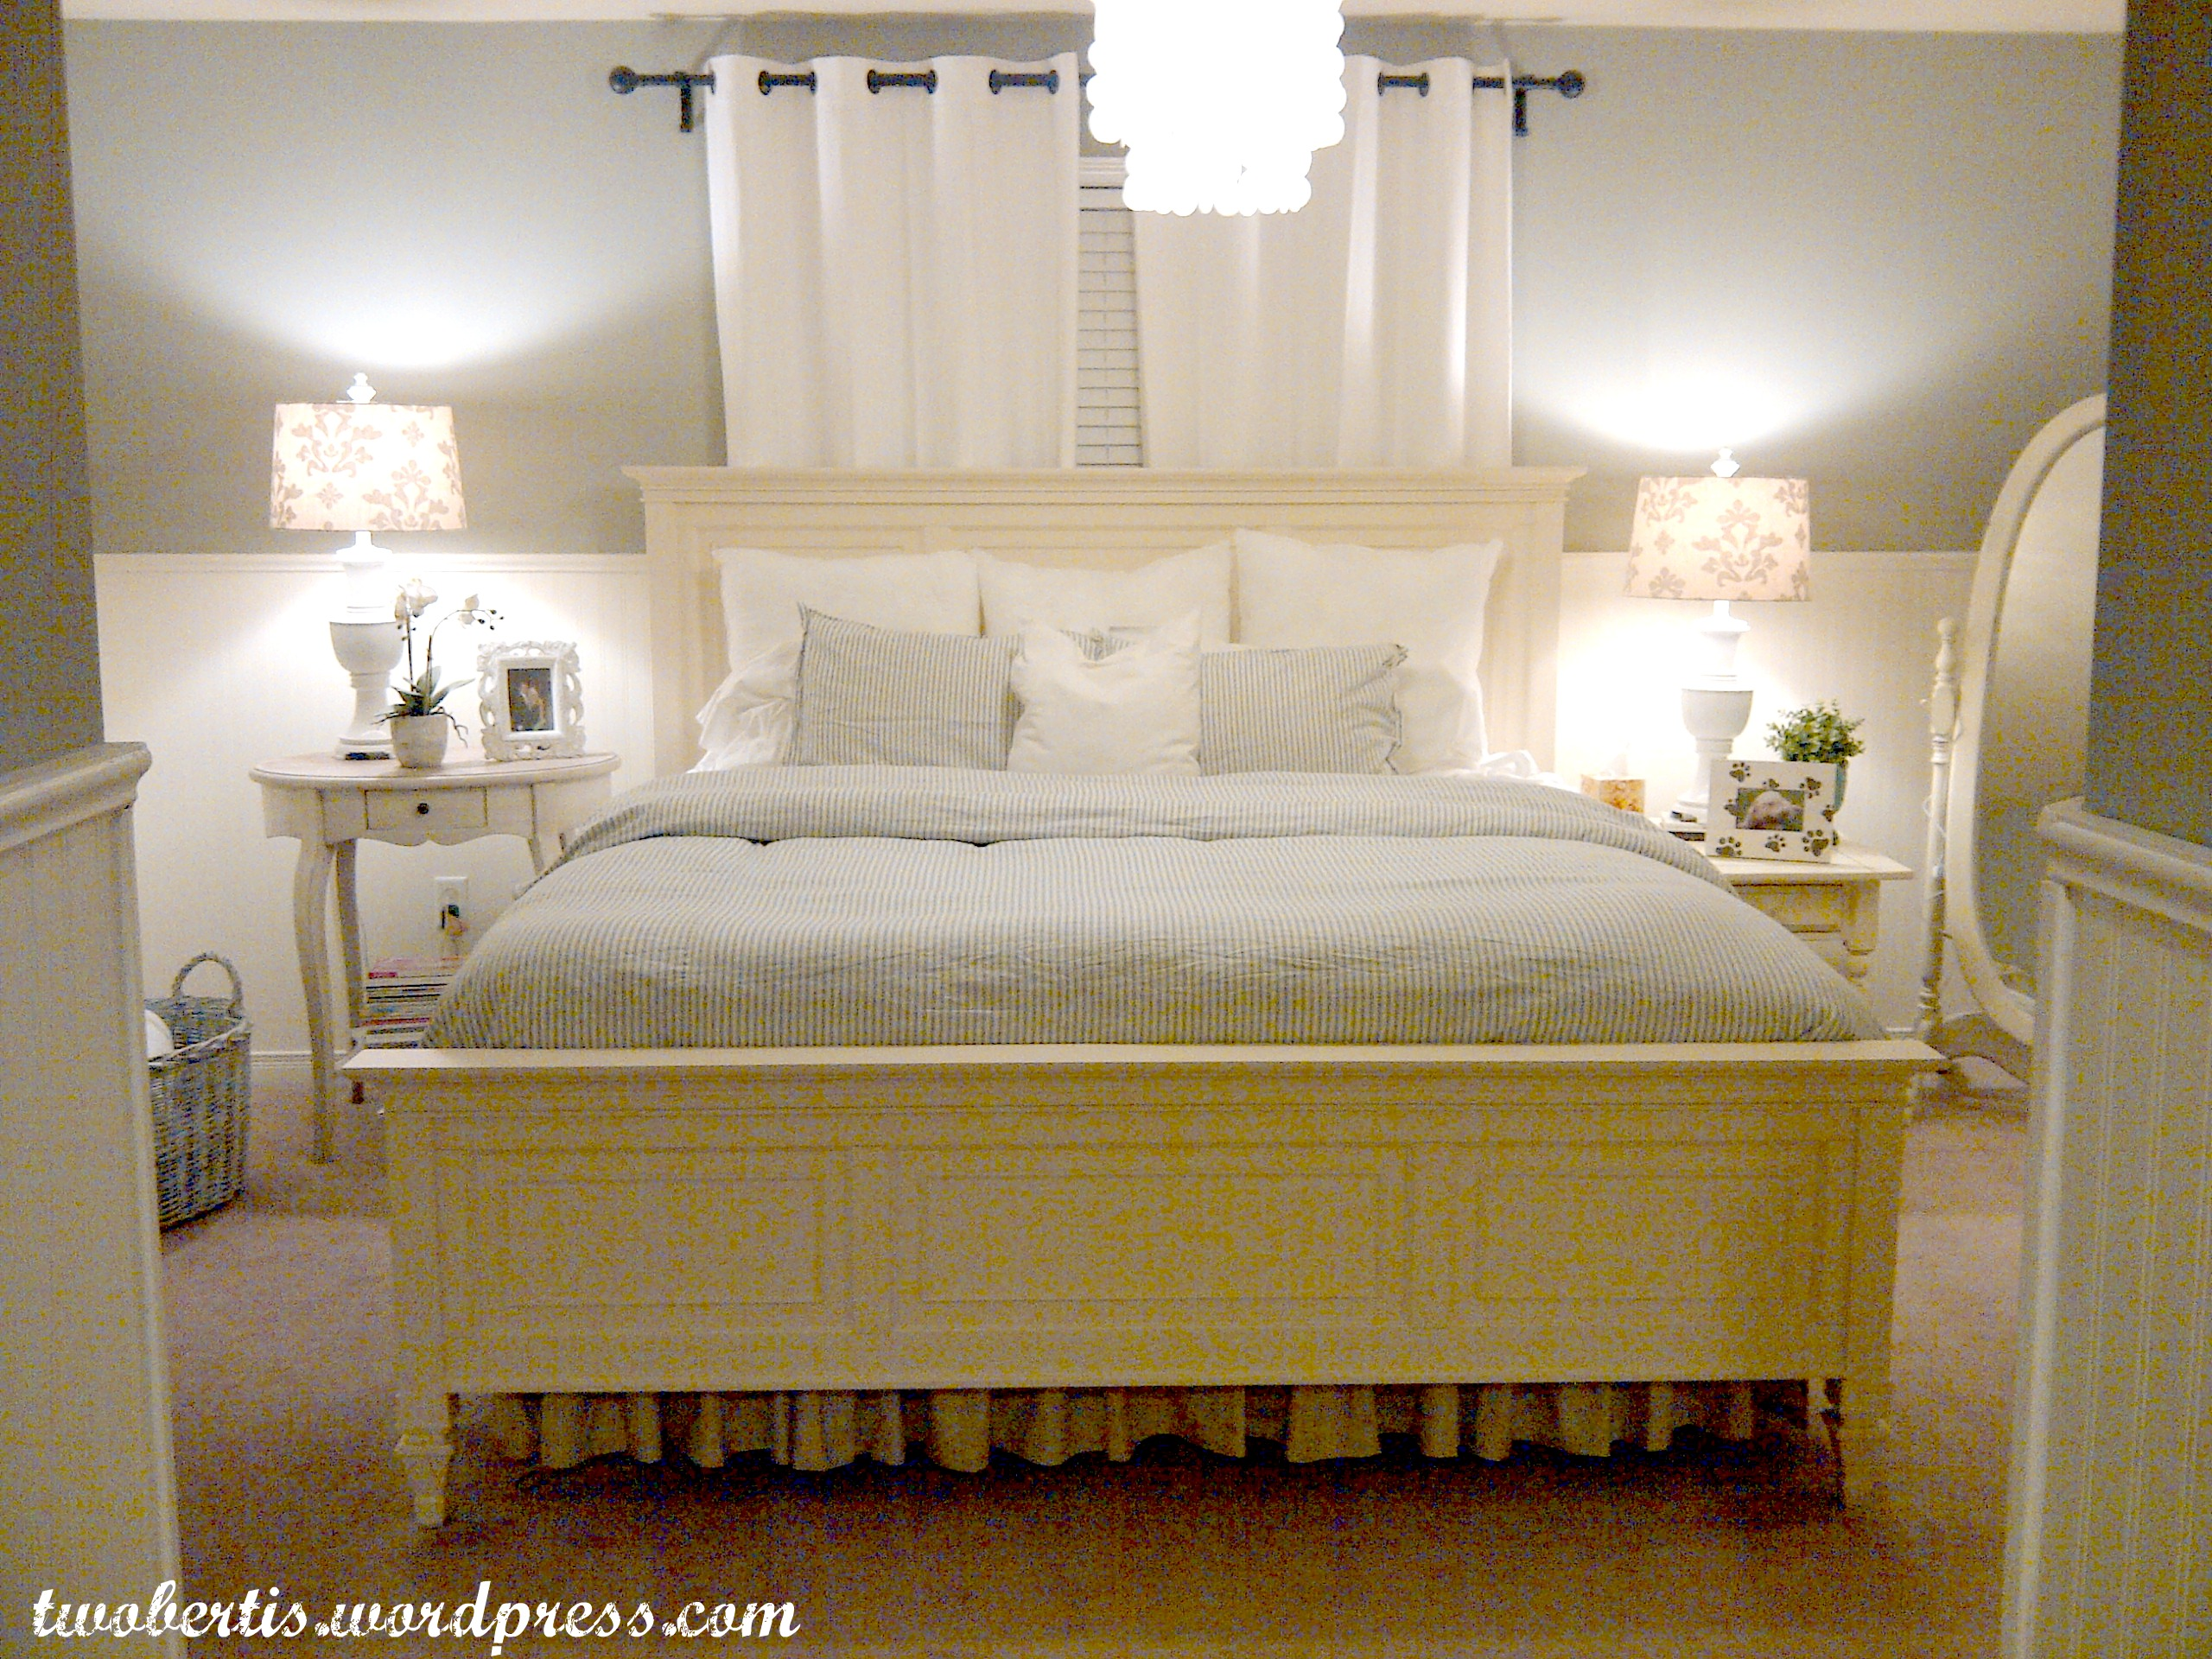 Pottery Barn Bedroom Remodelaholic Pottery Barn Inspired Master Bedroom Makeover